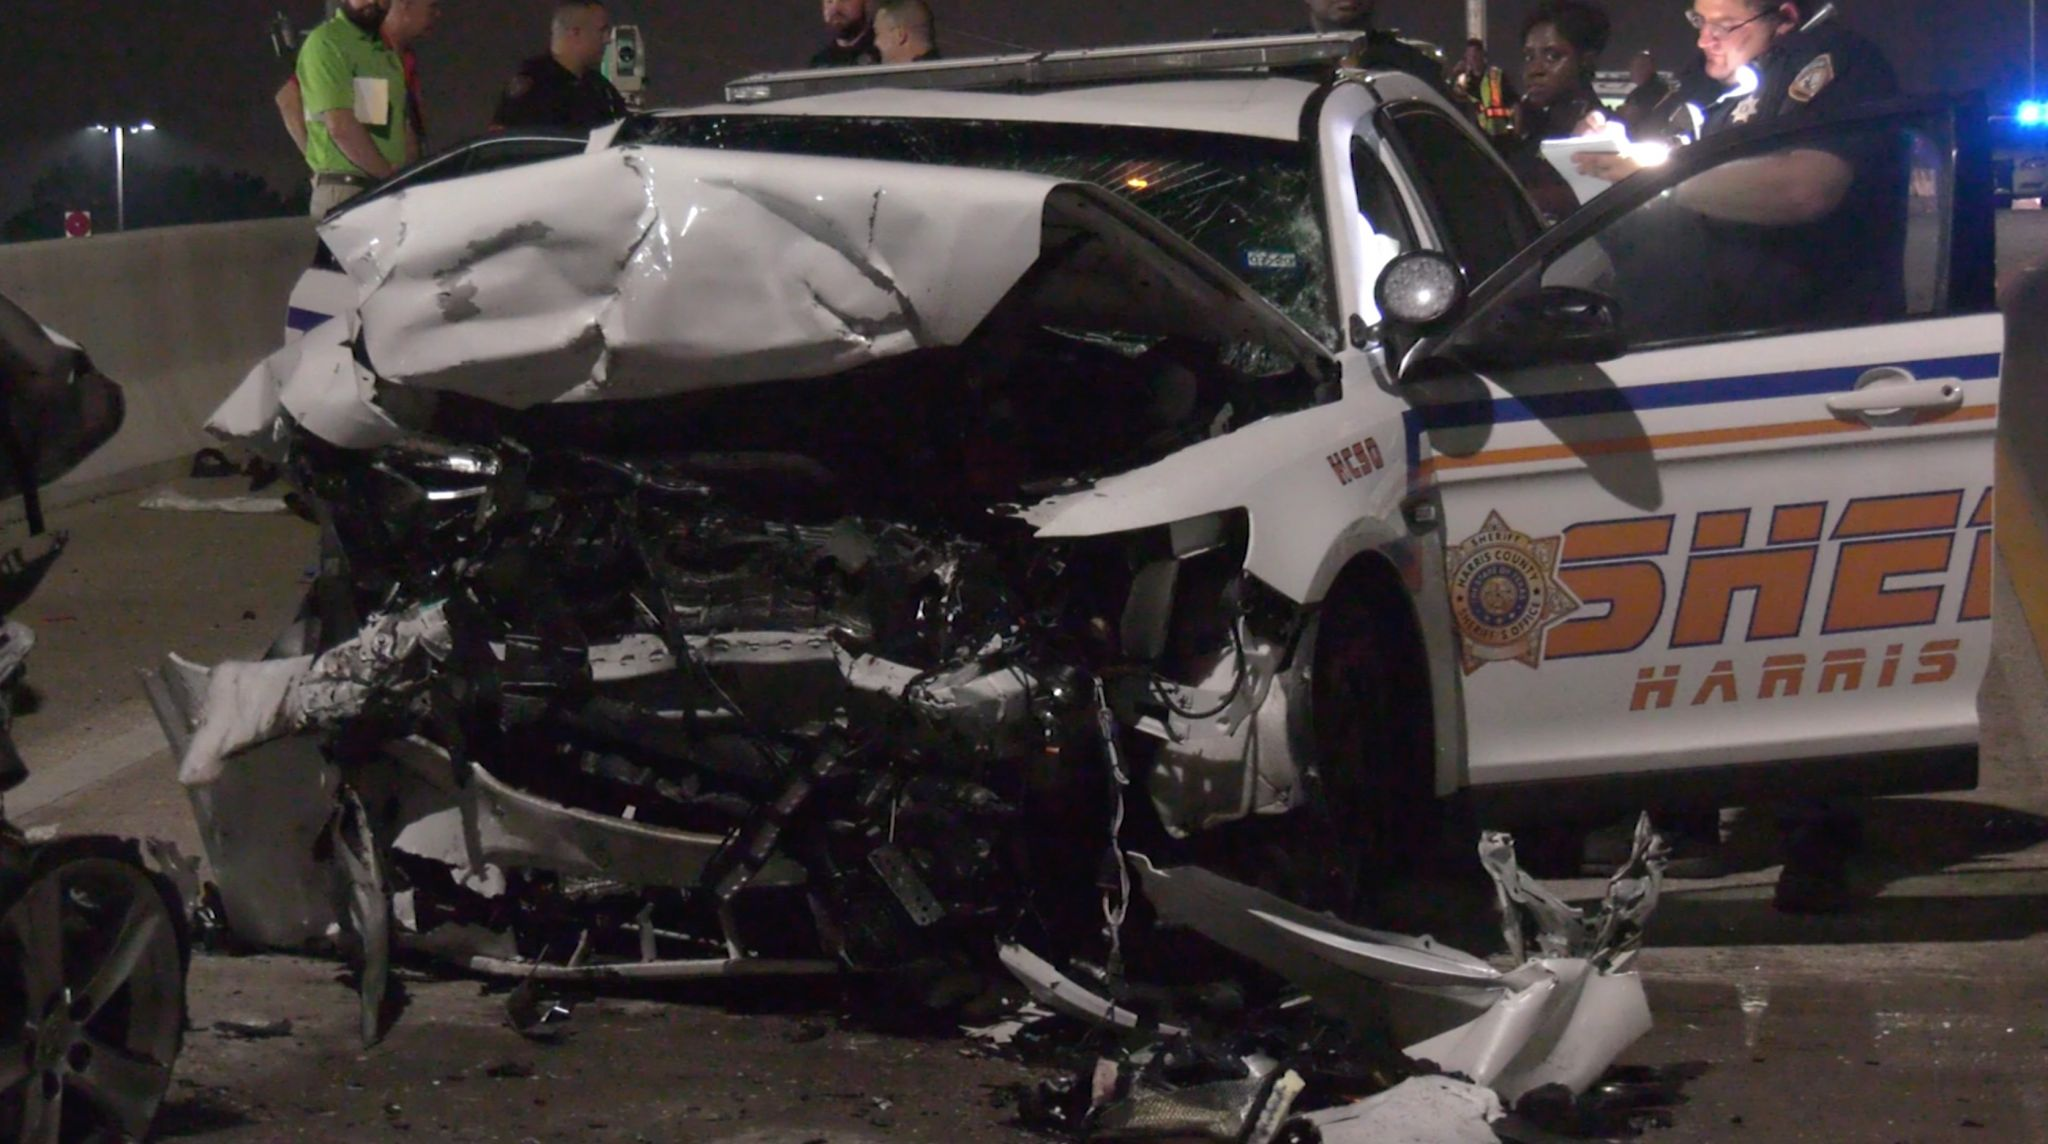 Suspect killed when drunken driver crashes into patrol car